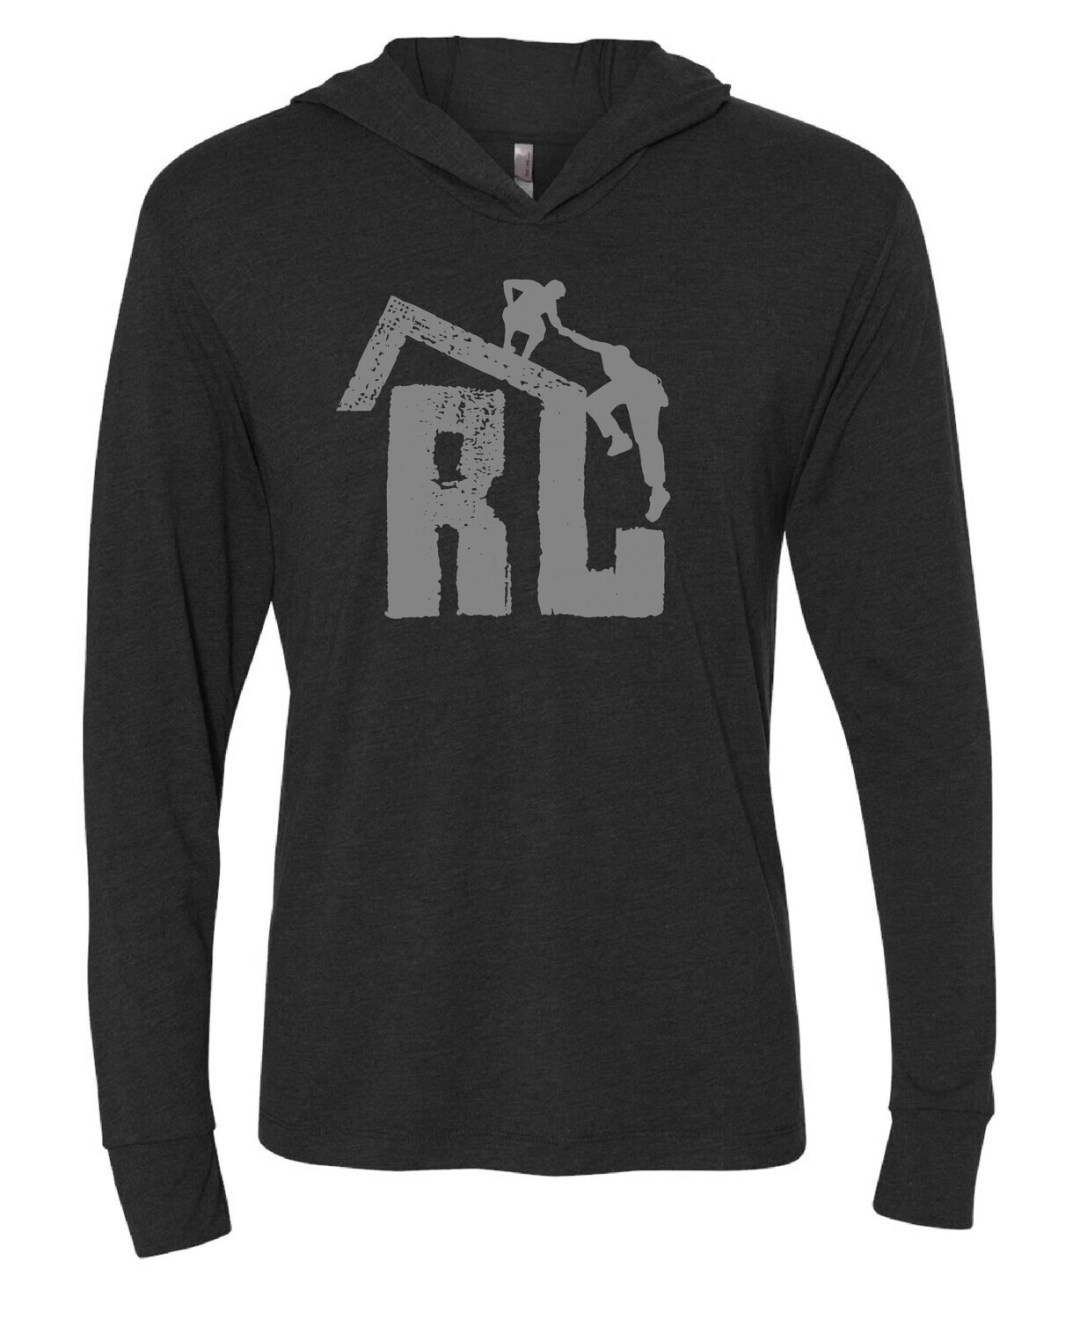 Long Sleeved Rooftop Pullover (Unisex)